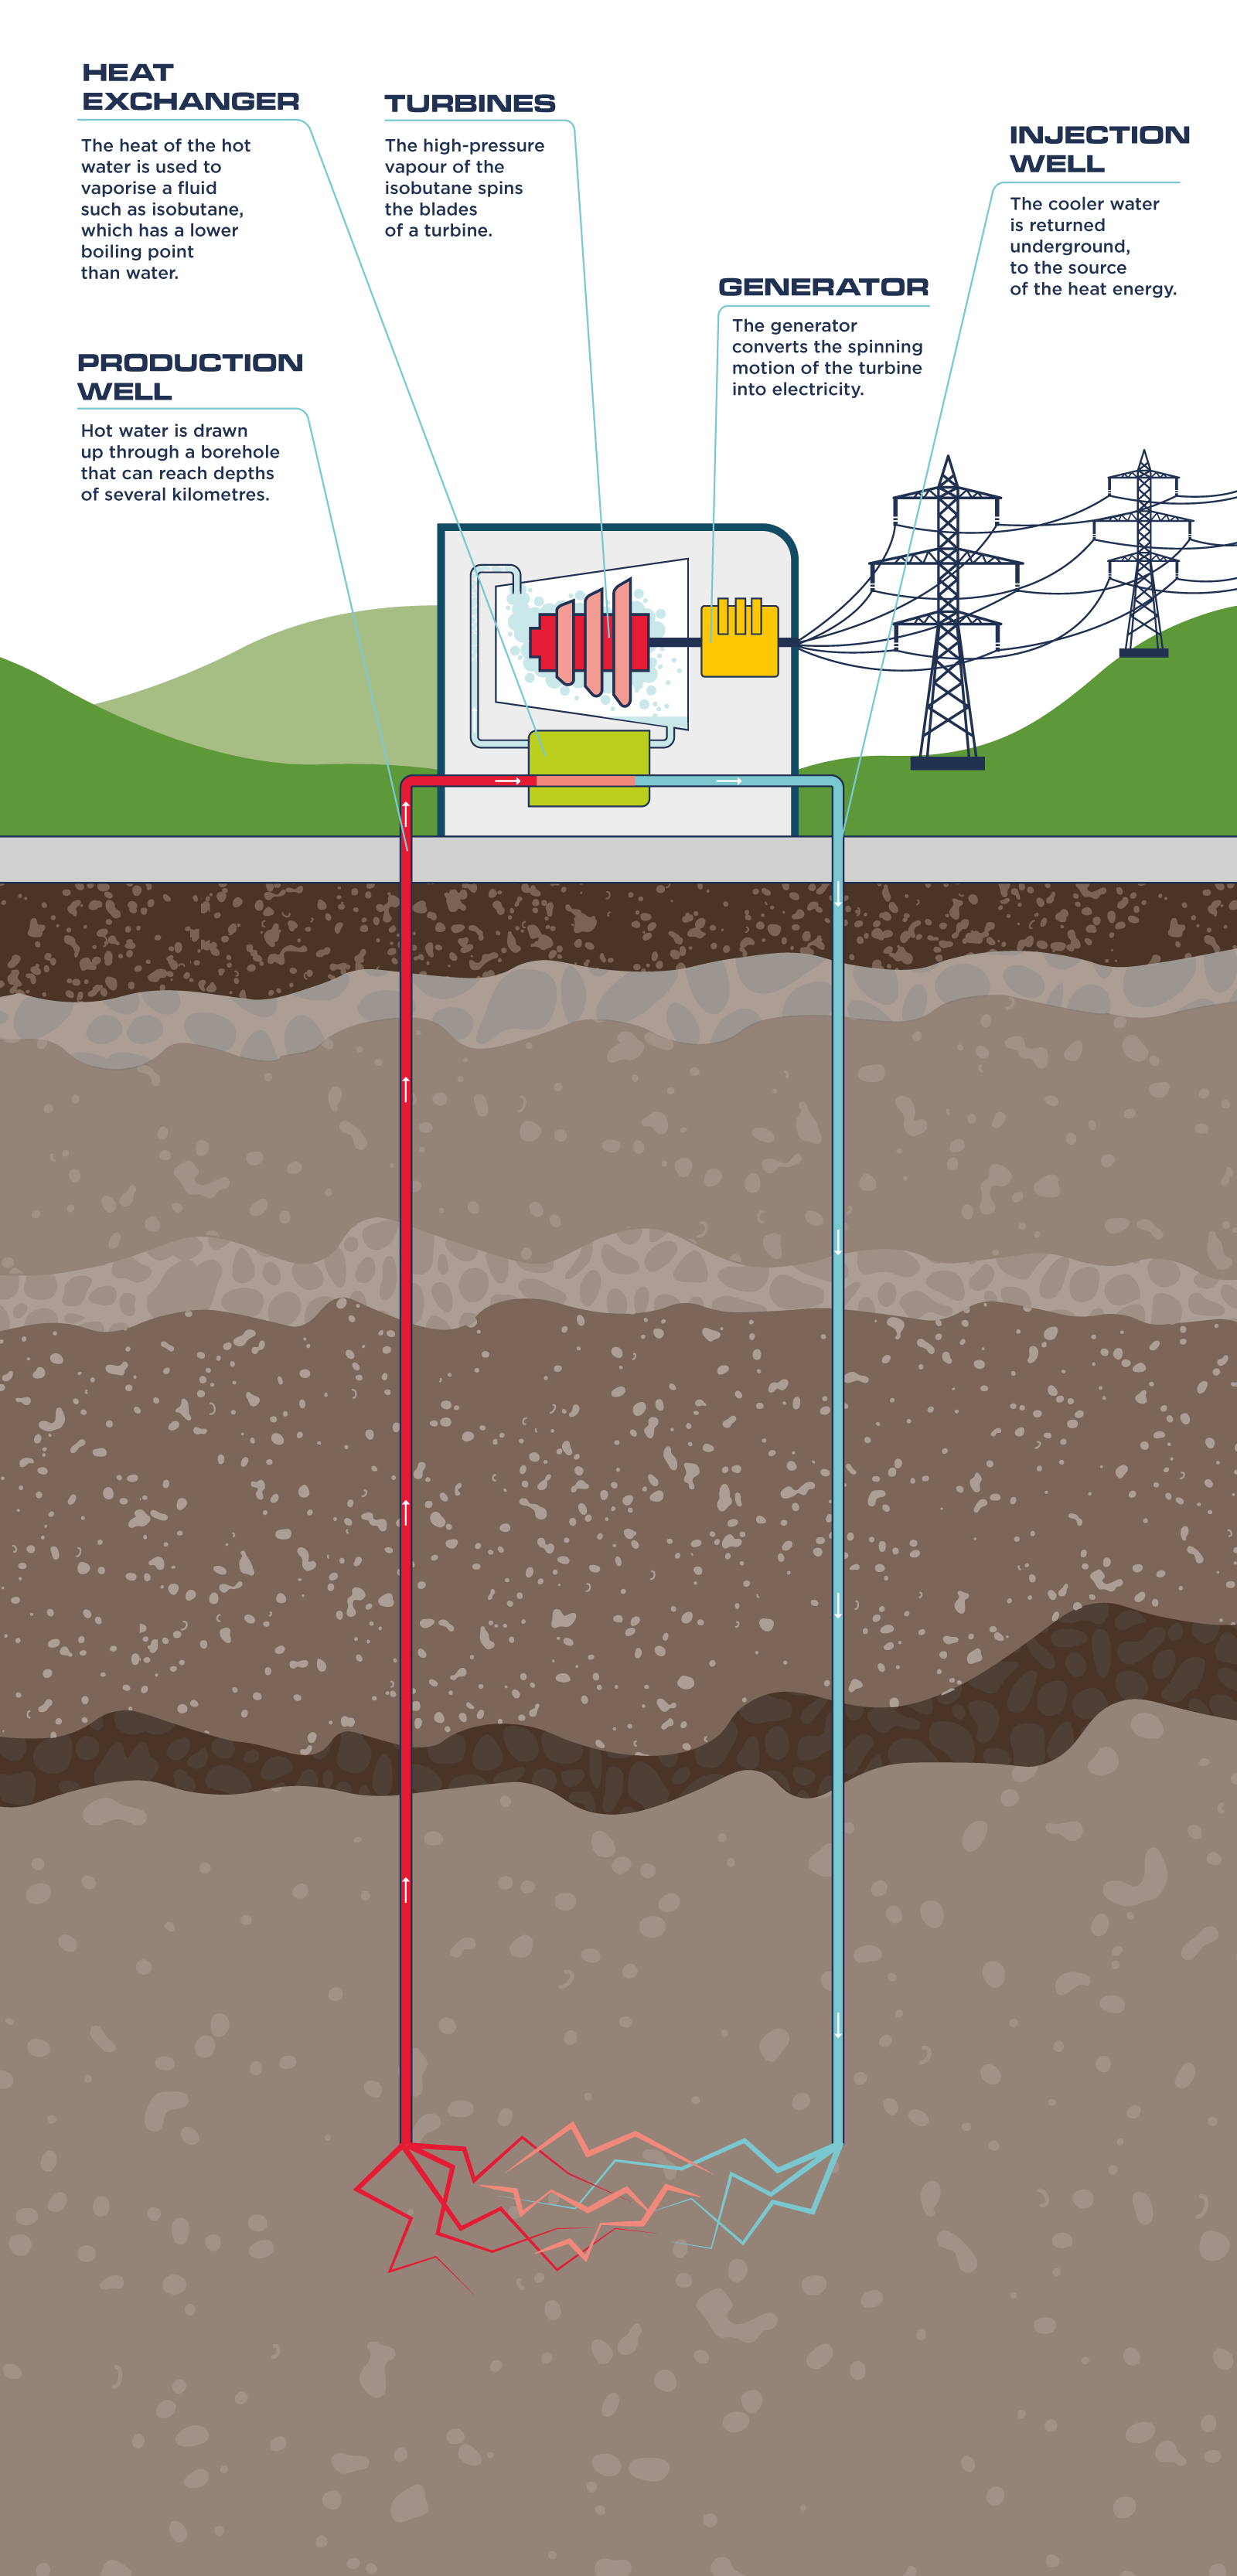 An illustrated diagram of a geothermal power station